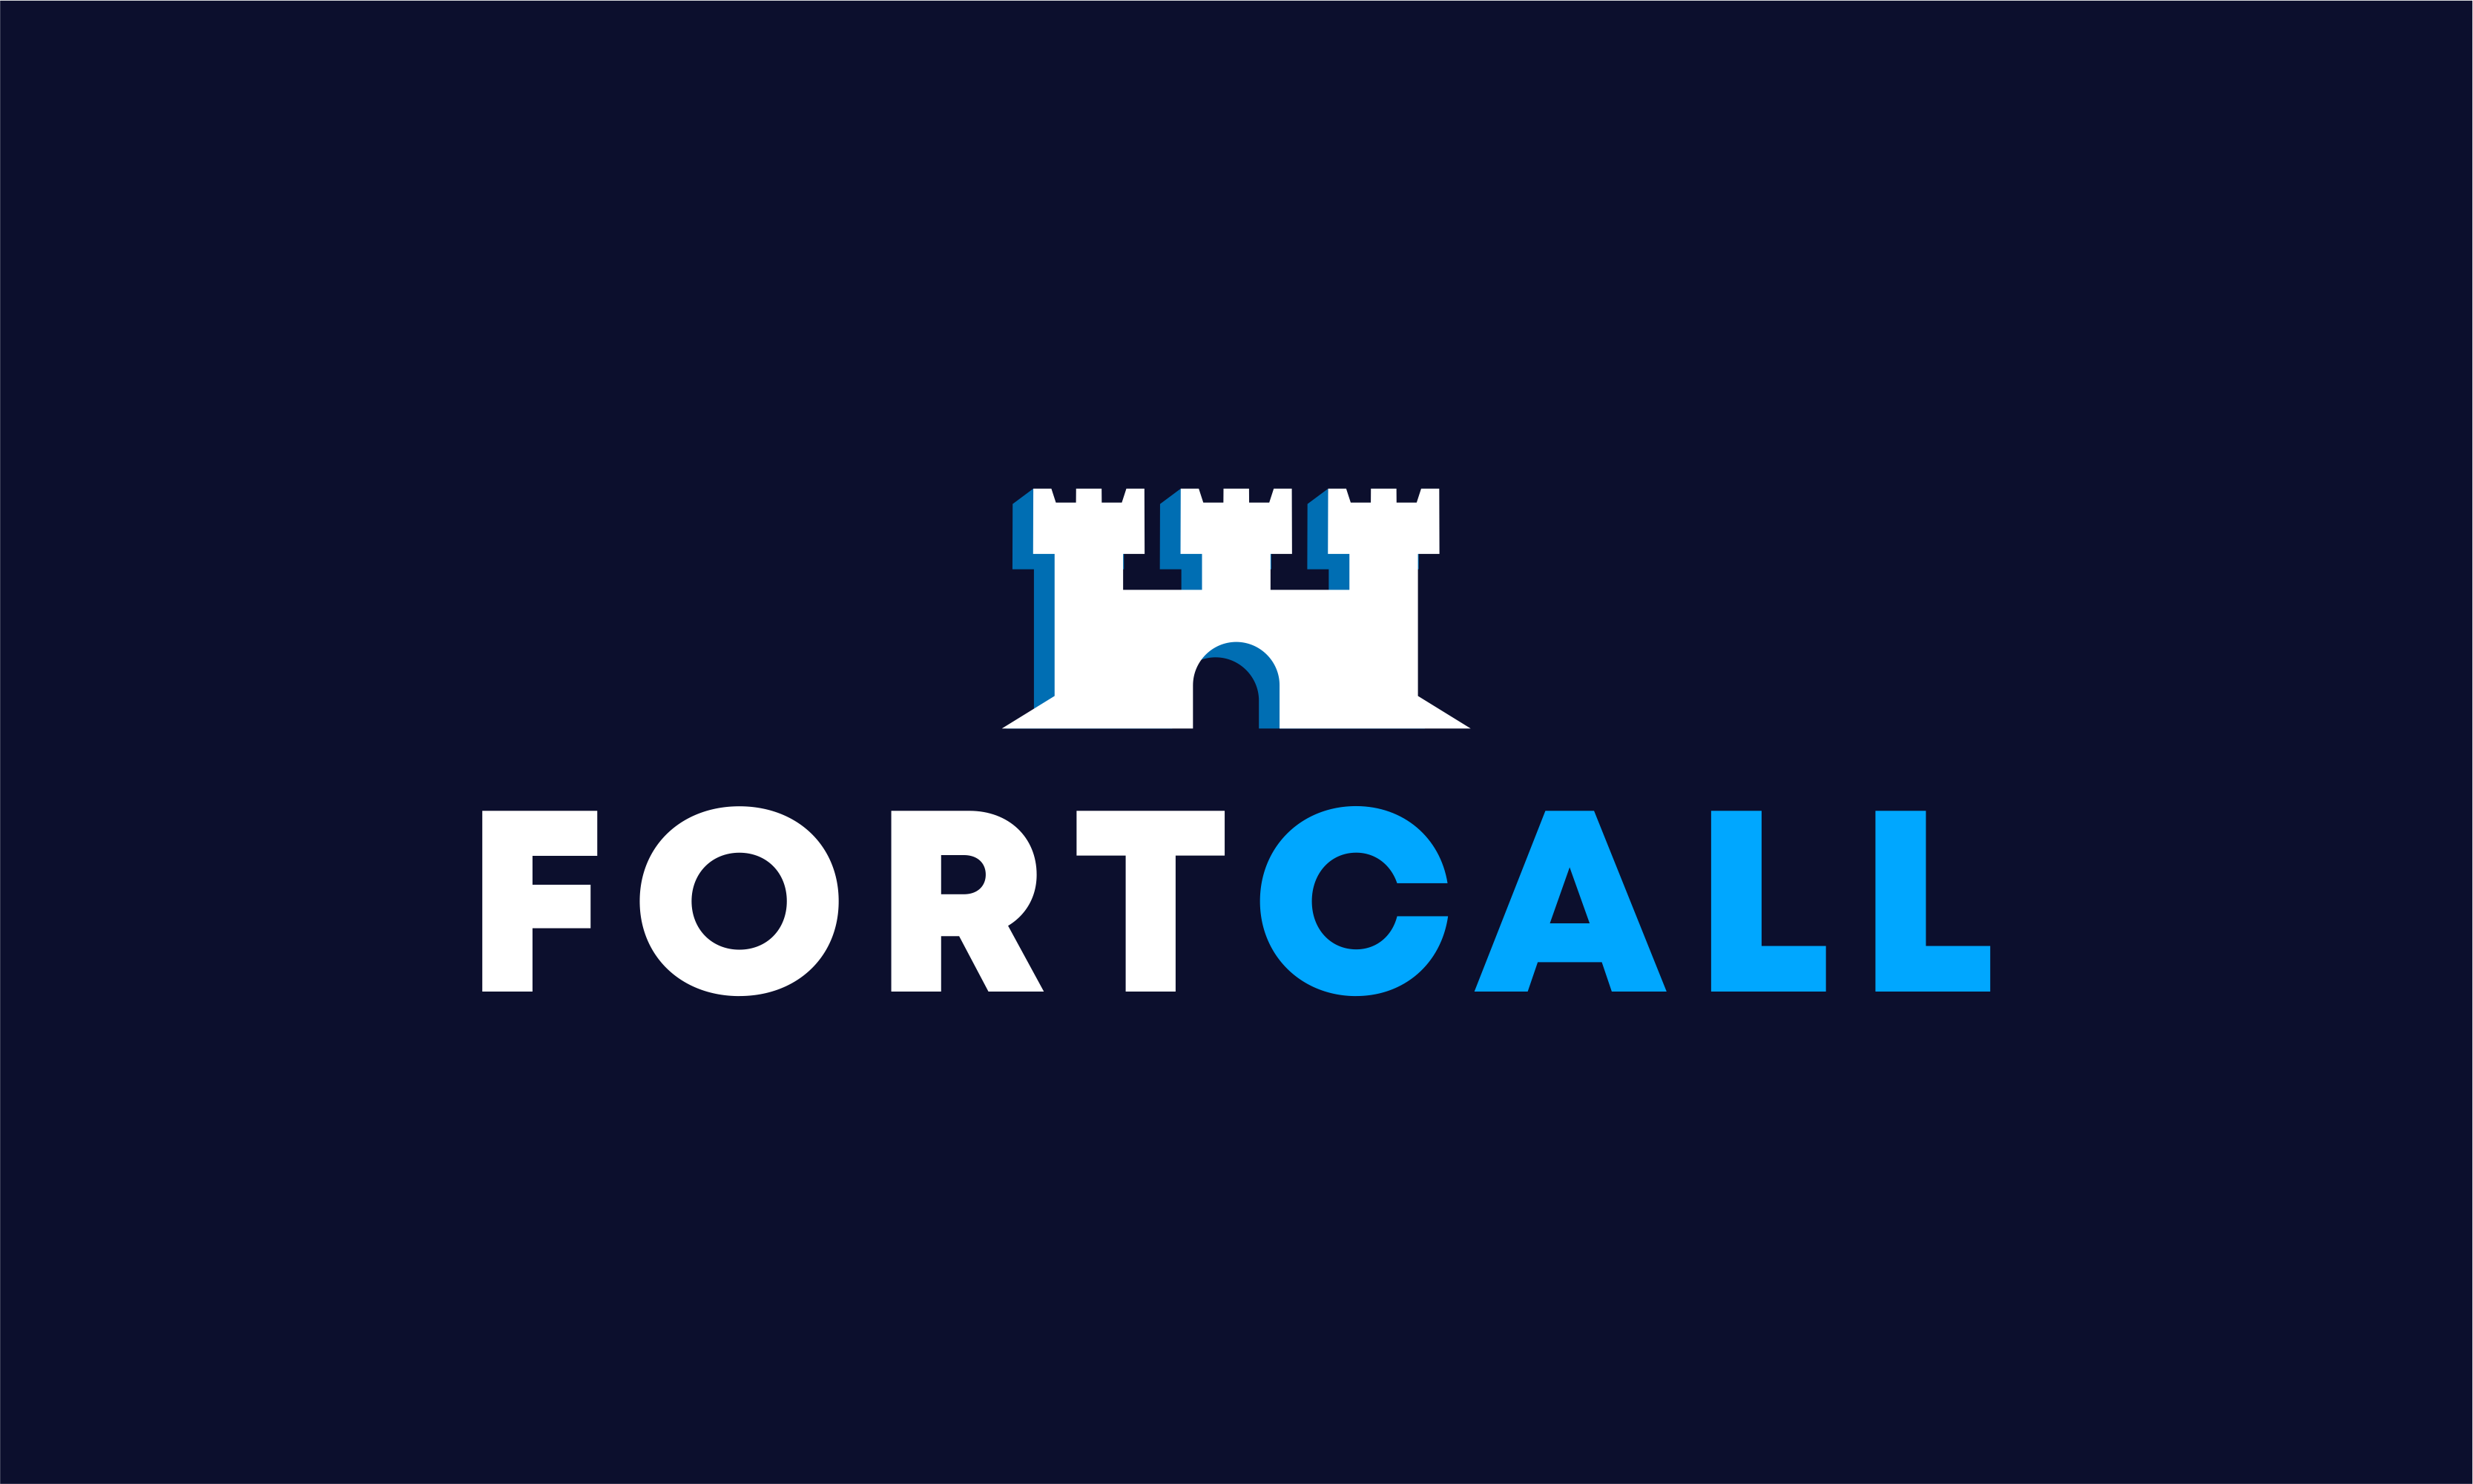 Fortcall